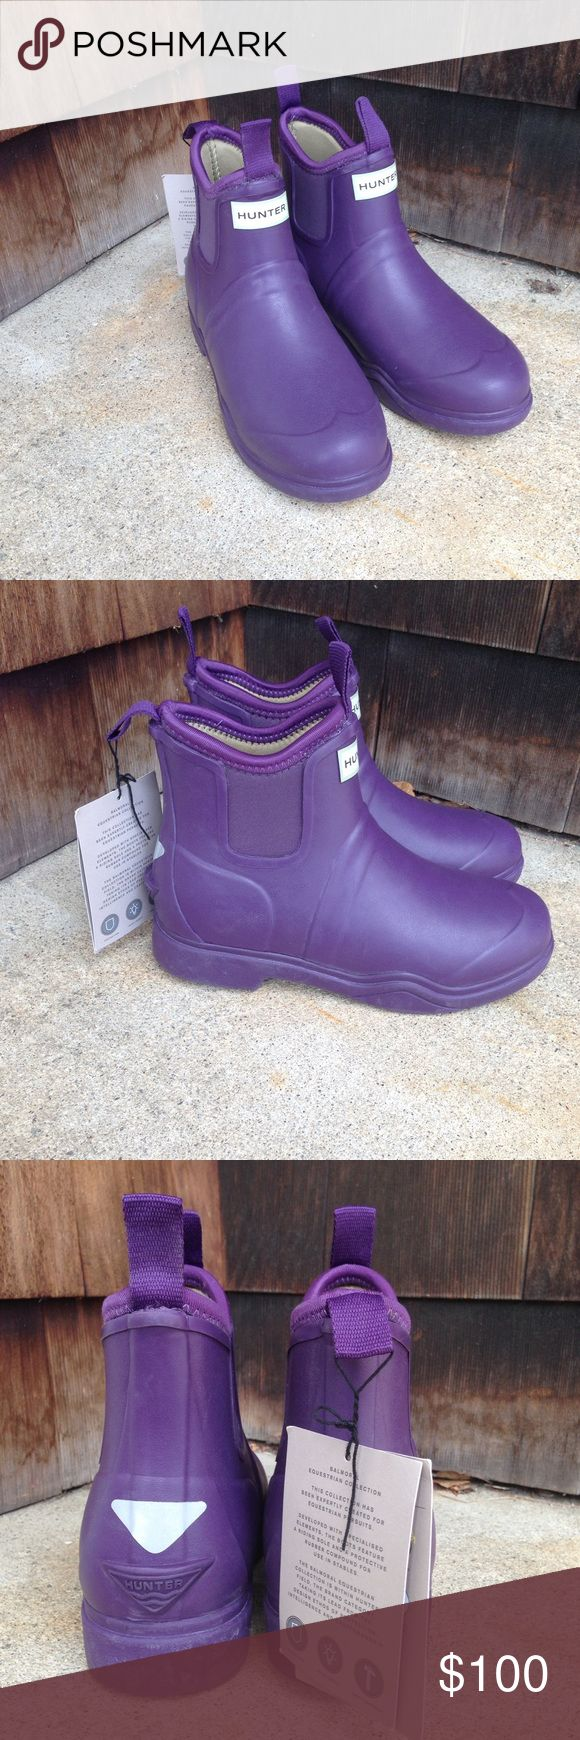 NWT Purple Hunter Balmoral Equestrian boots Short purple Hunter Balmoral Equestrian boots. Made of neoprene. See photos for description on tags. Hunter Boots Shoes Winter & Rain Boots